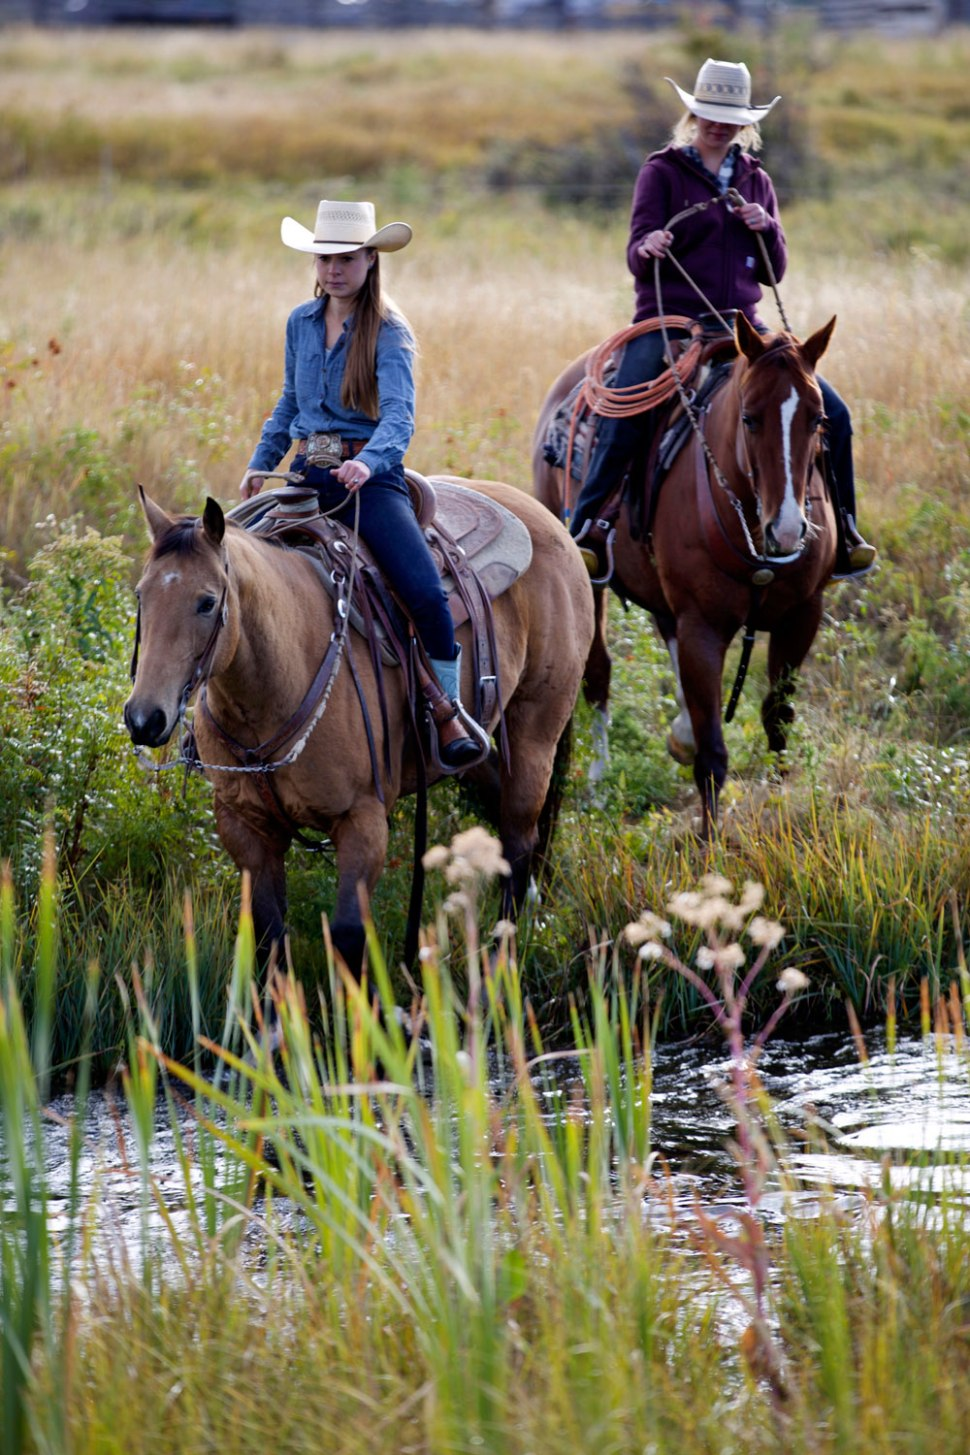 Lilly Brogger and Morgan Kuntz in Montana / Crafted in Carhartt